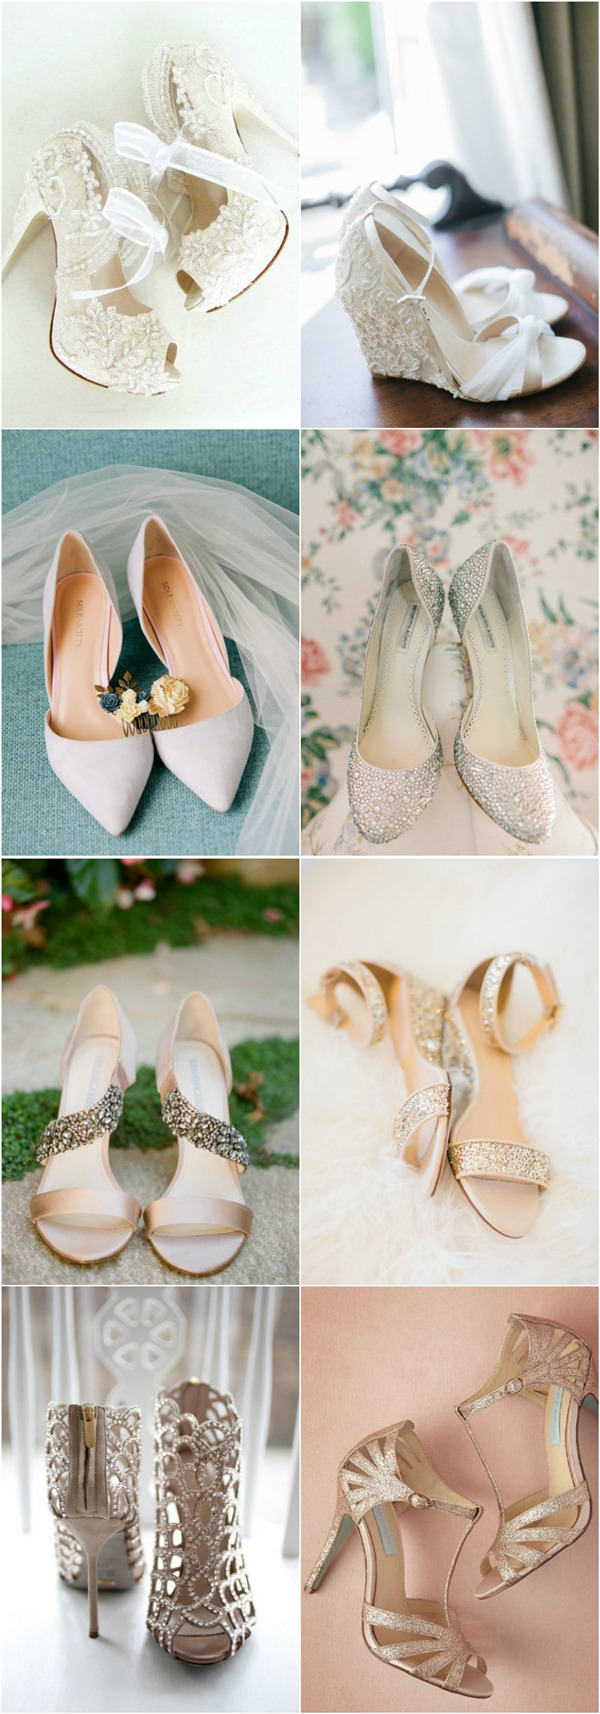 20 Most Wanted Wedding Shoes For Stylish Brides